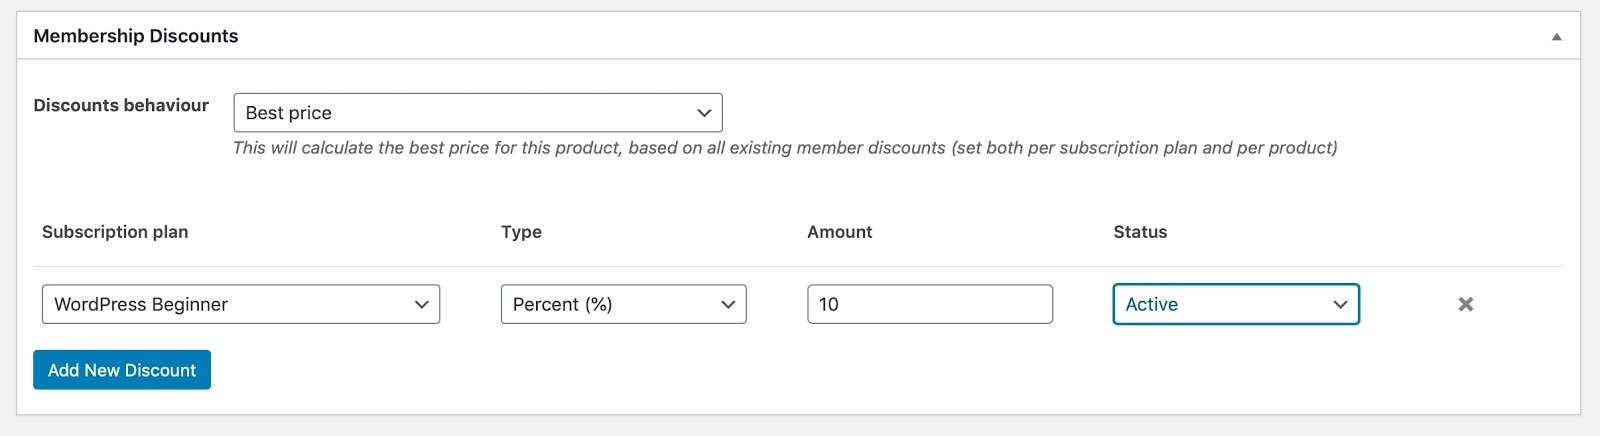 Screenshot of a membership discount